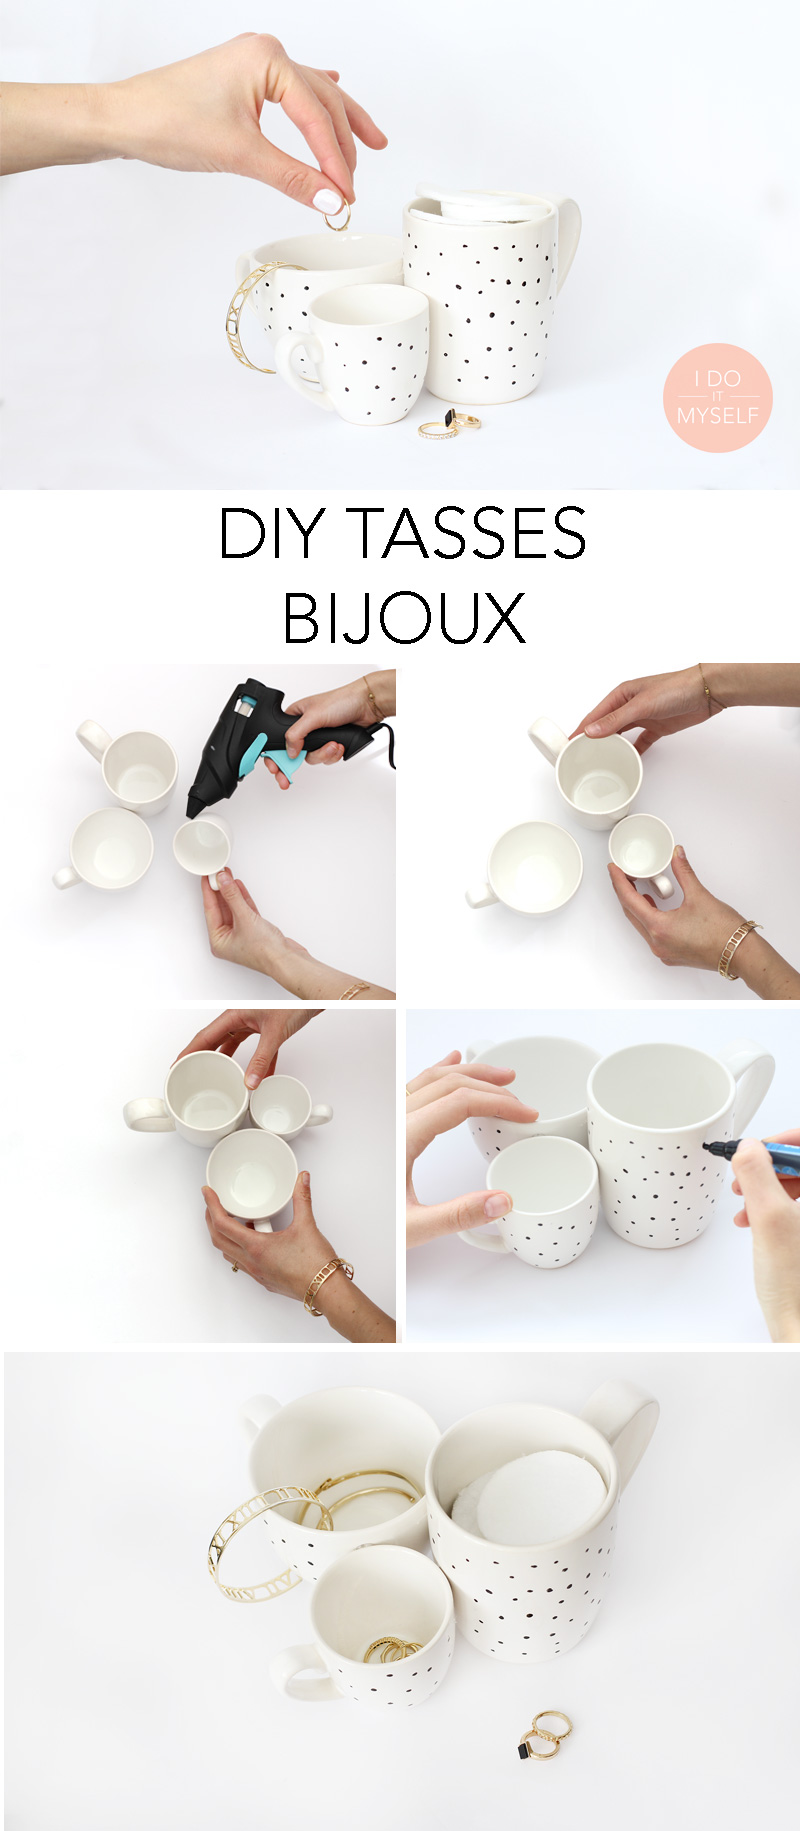 diy 58 tasses porte bijoux i do it myself. Black Bedroom Furniture Sets. Home Design Ideas